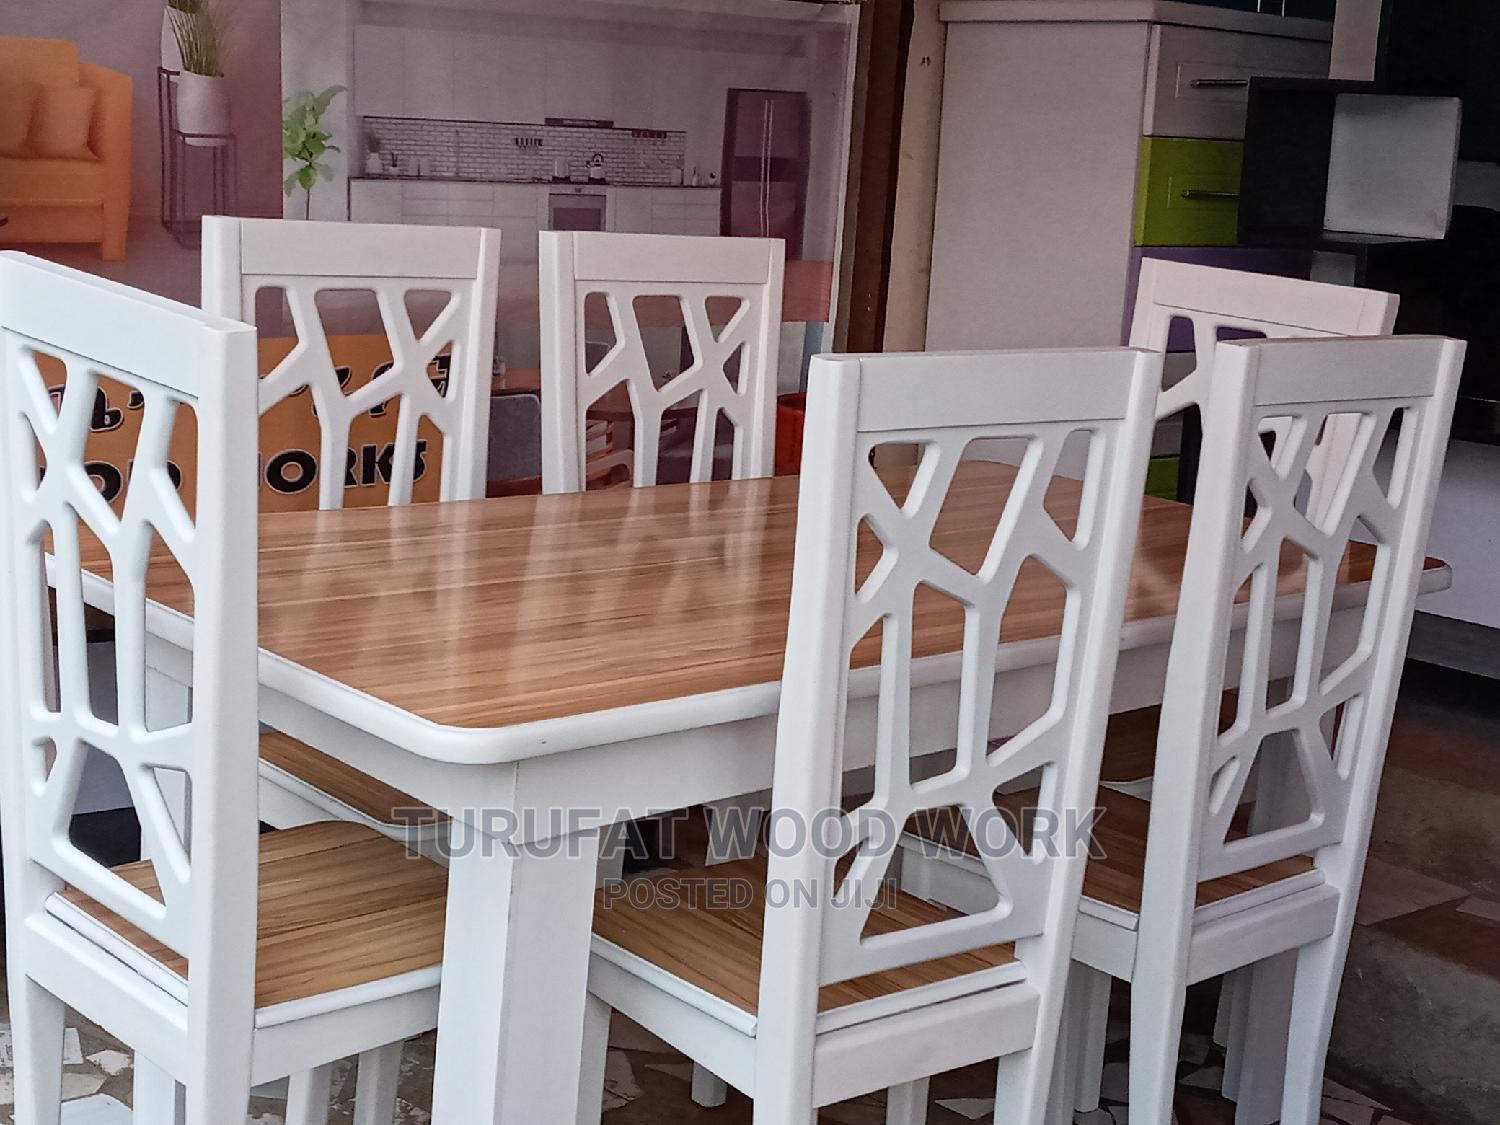 New Dining Table(6 Chairs)